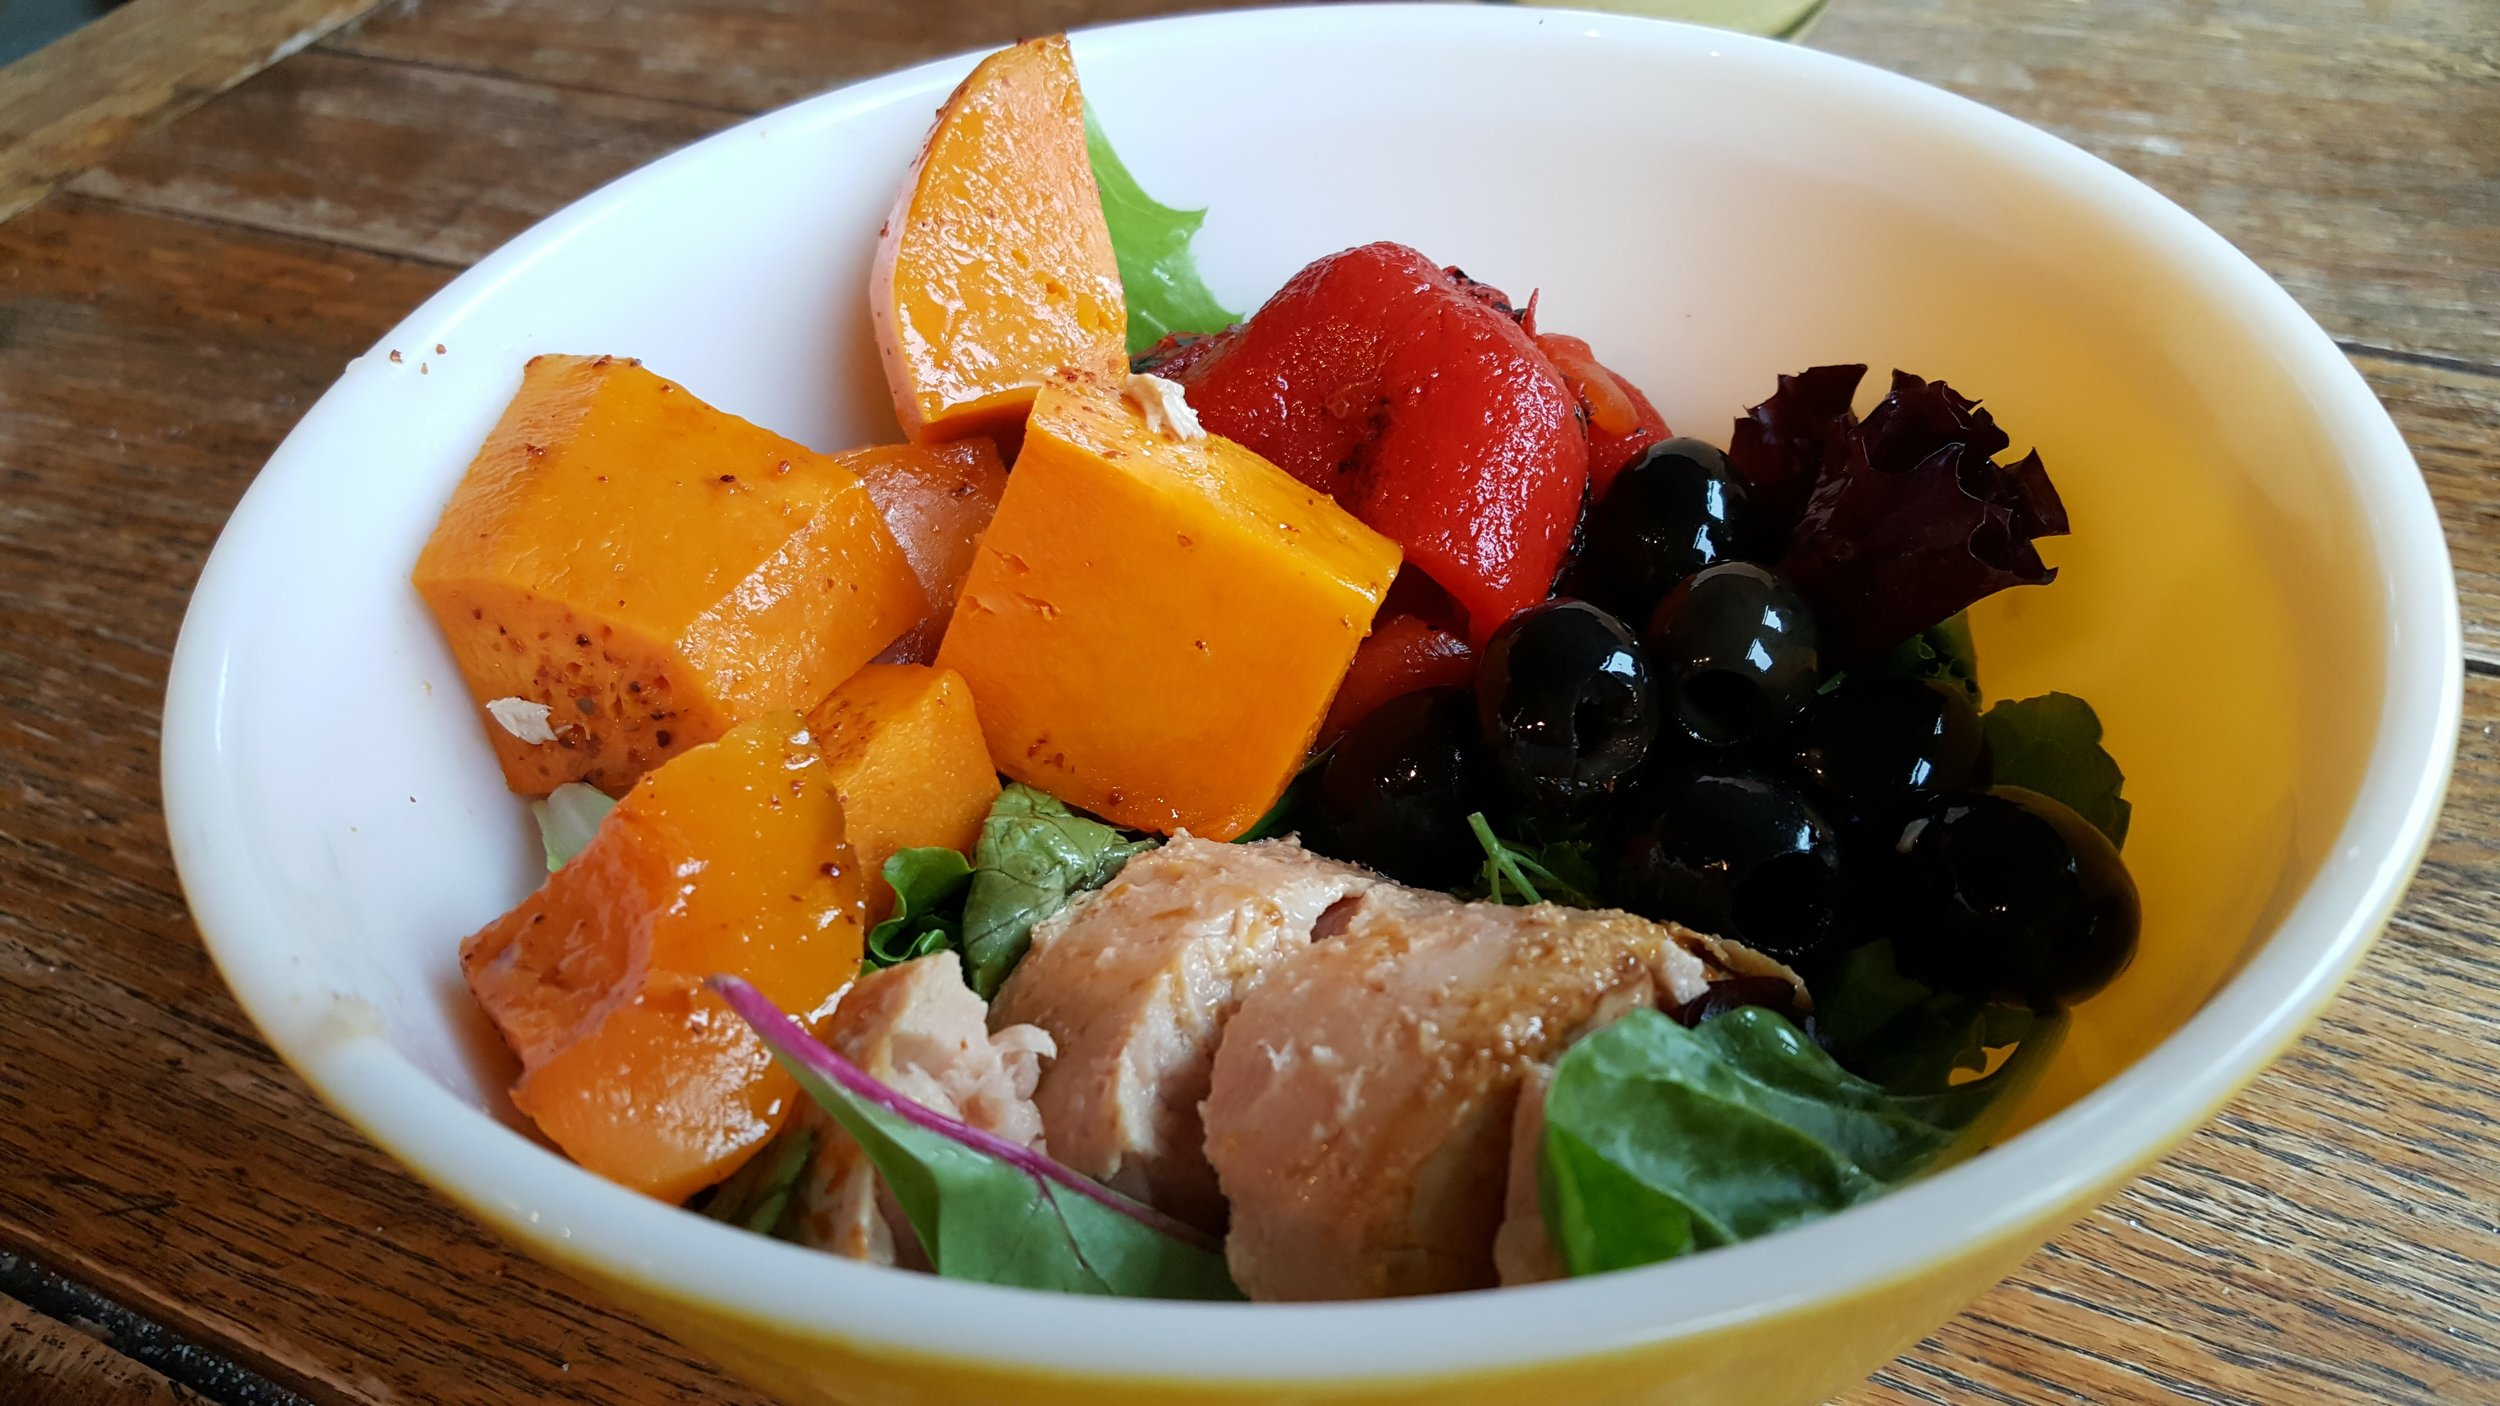 Salad bowl of butternut squash, greens, roasted red peppers, tuna and olives